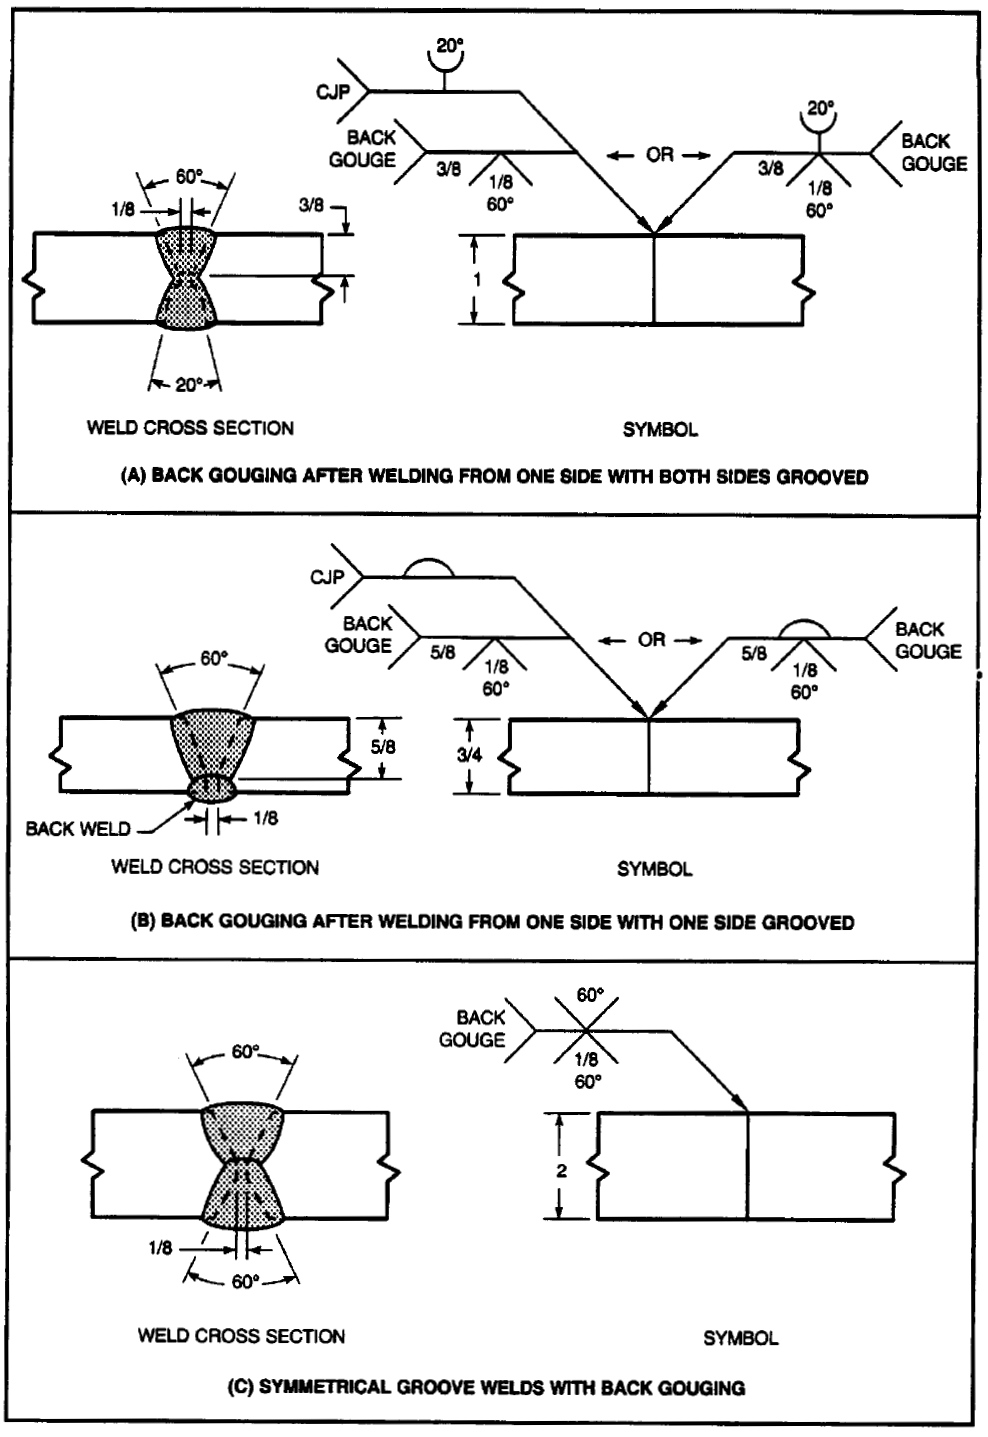 Welding Diagram Symbols Wiring Database Tig Line Distinction Between Weld Symbol And Weldknowledge Index Arc Welder